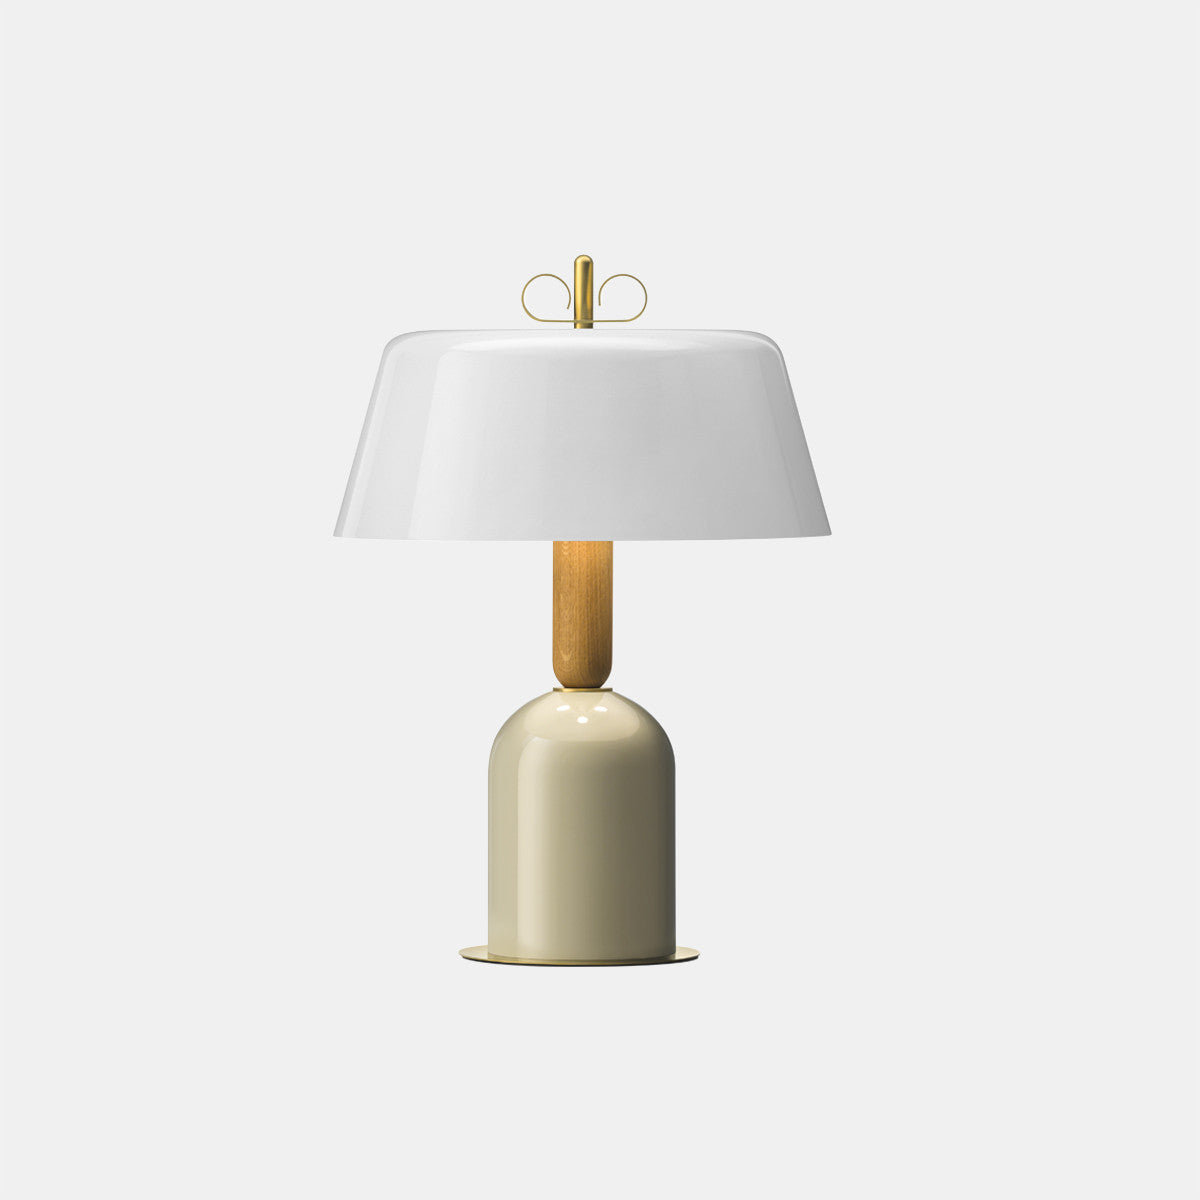 Bon Ton White/Natural Brass Table Lamp